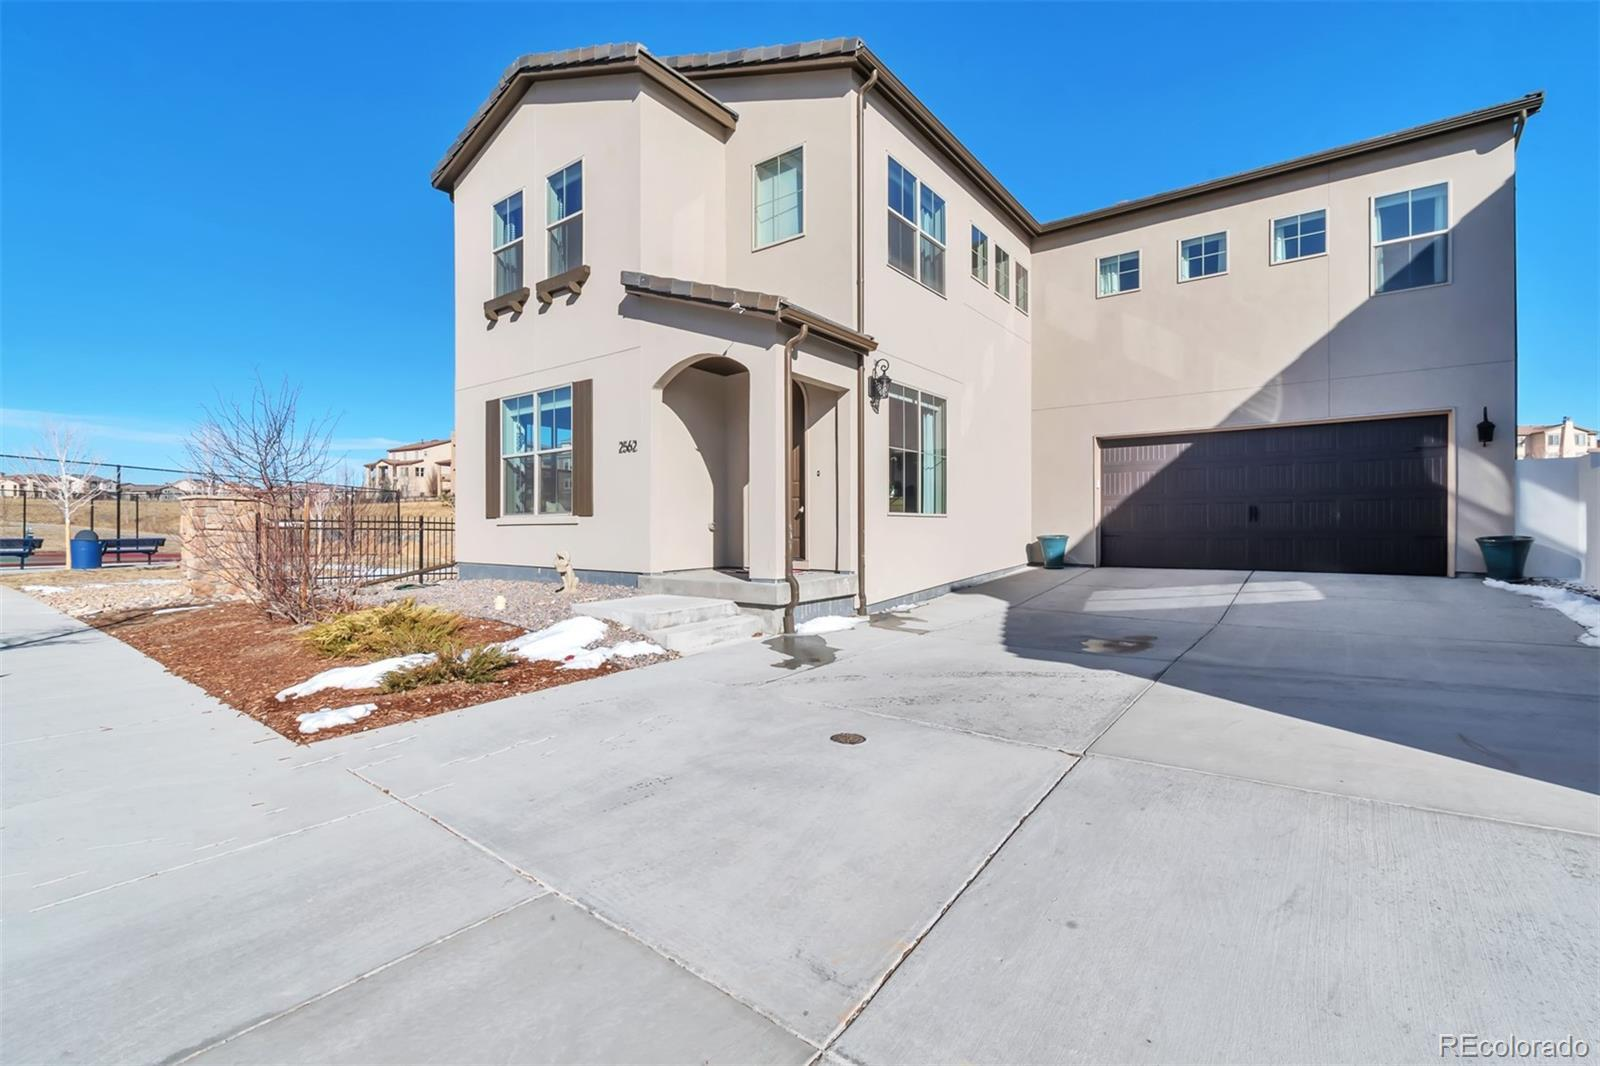 2562 S Norse Court, Lakewood, CO 80228 - #: 6071293